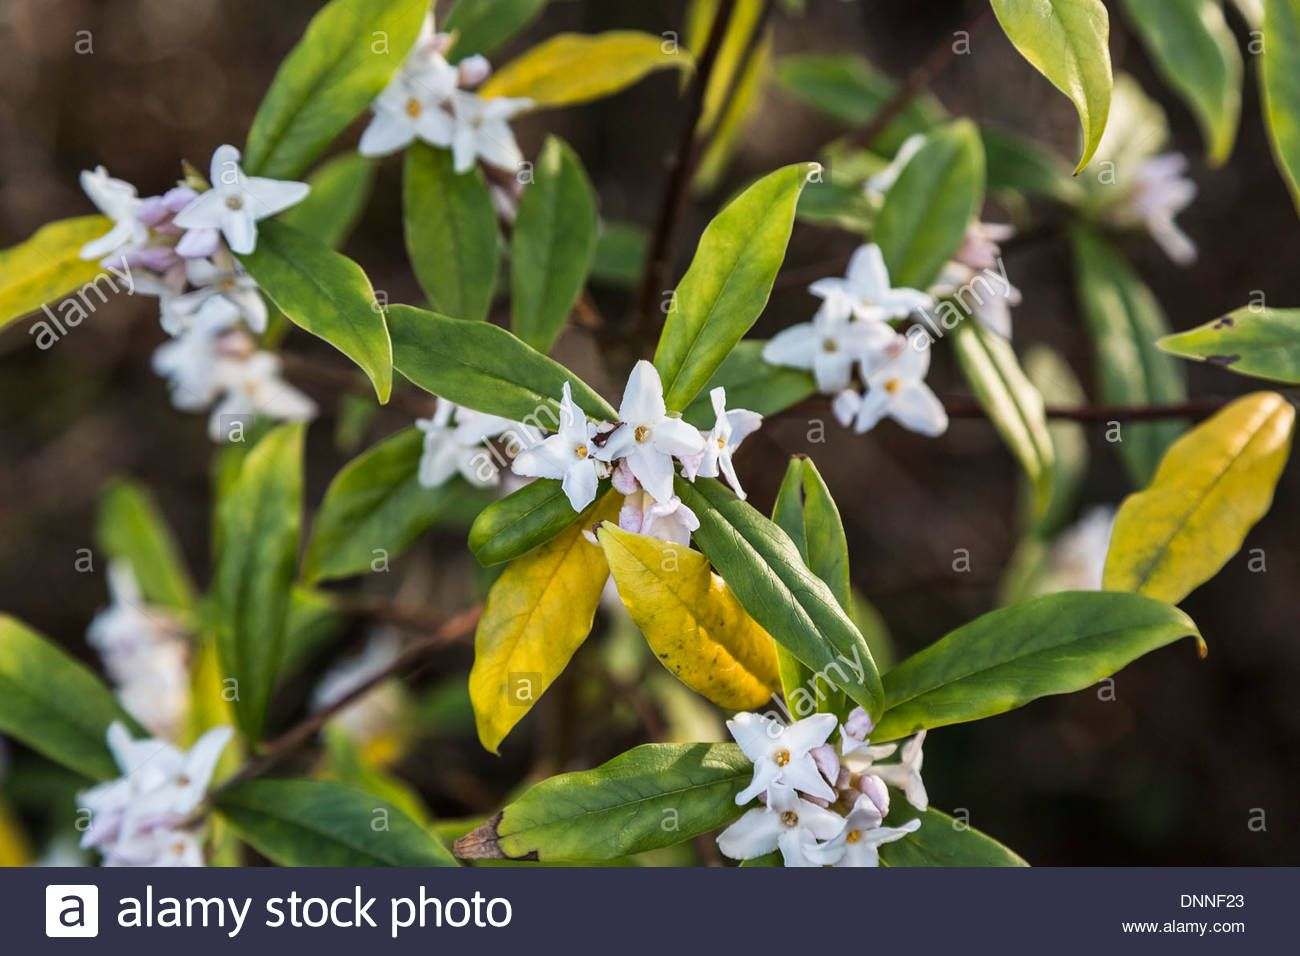 White Flowers Of Daphne Bholua Nepalese Paper Plant A Stock